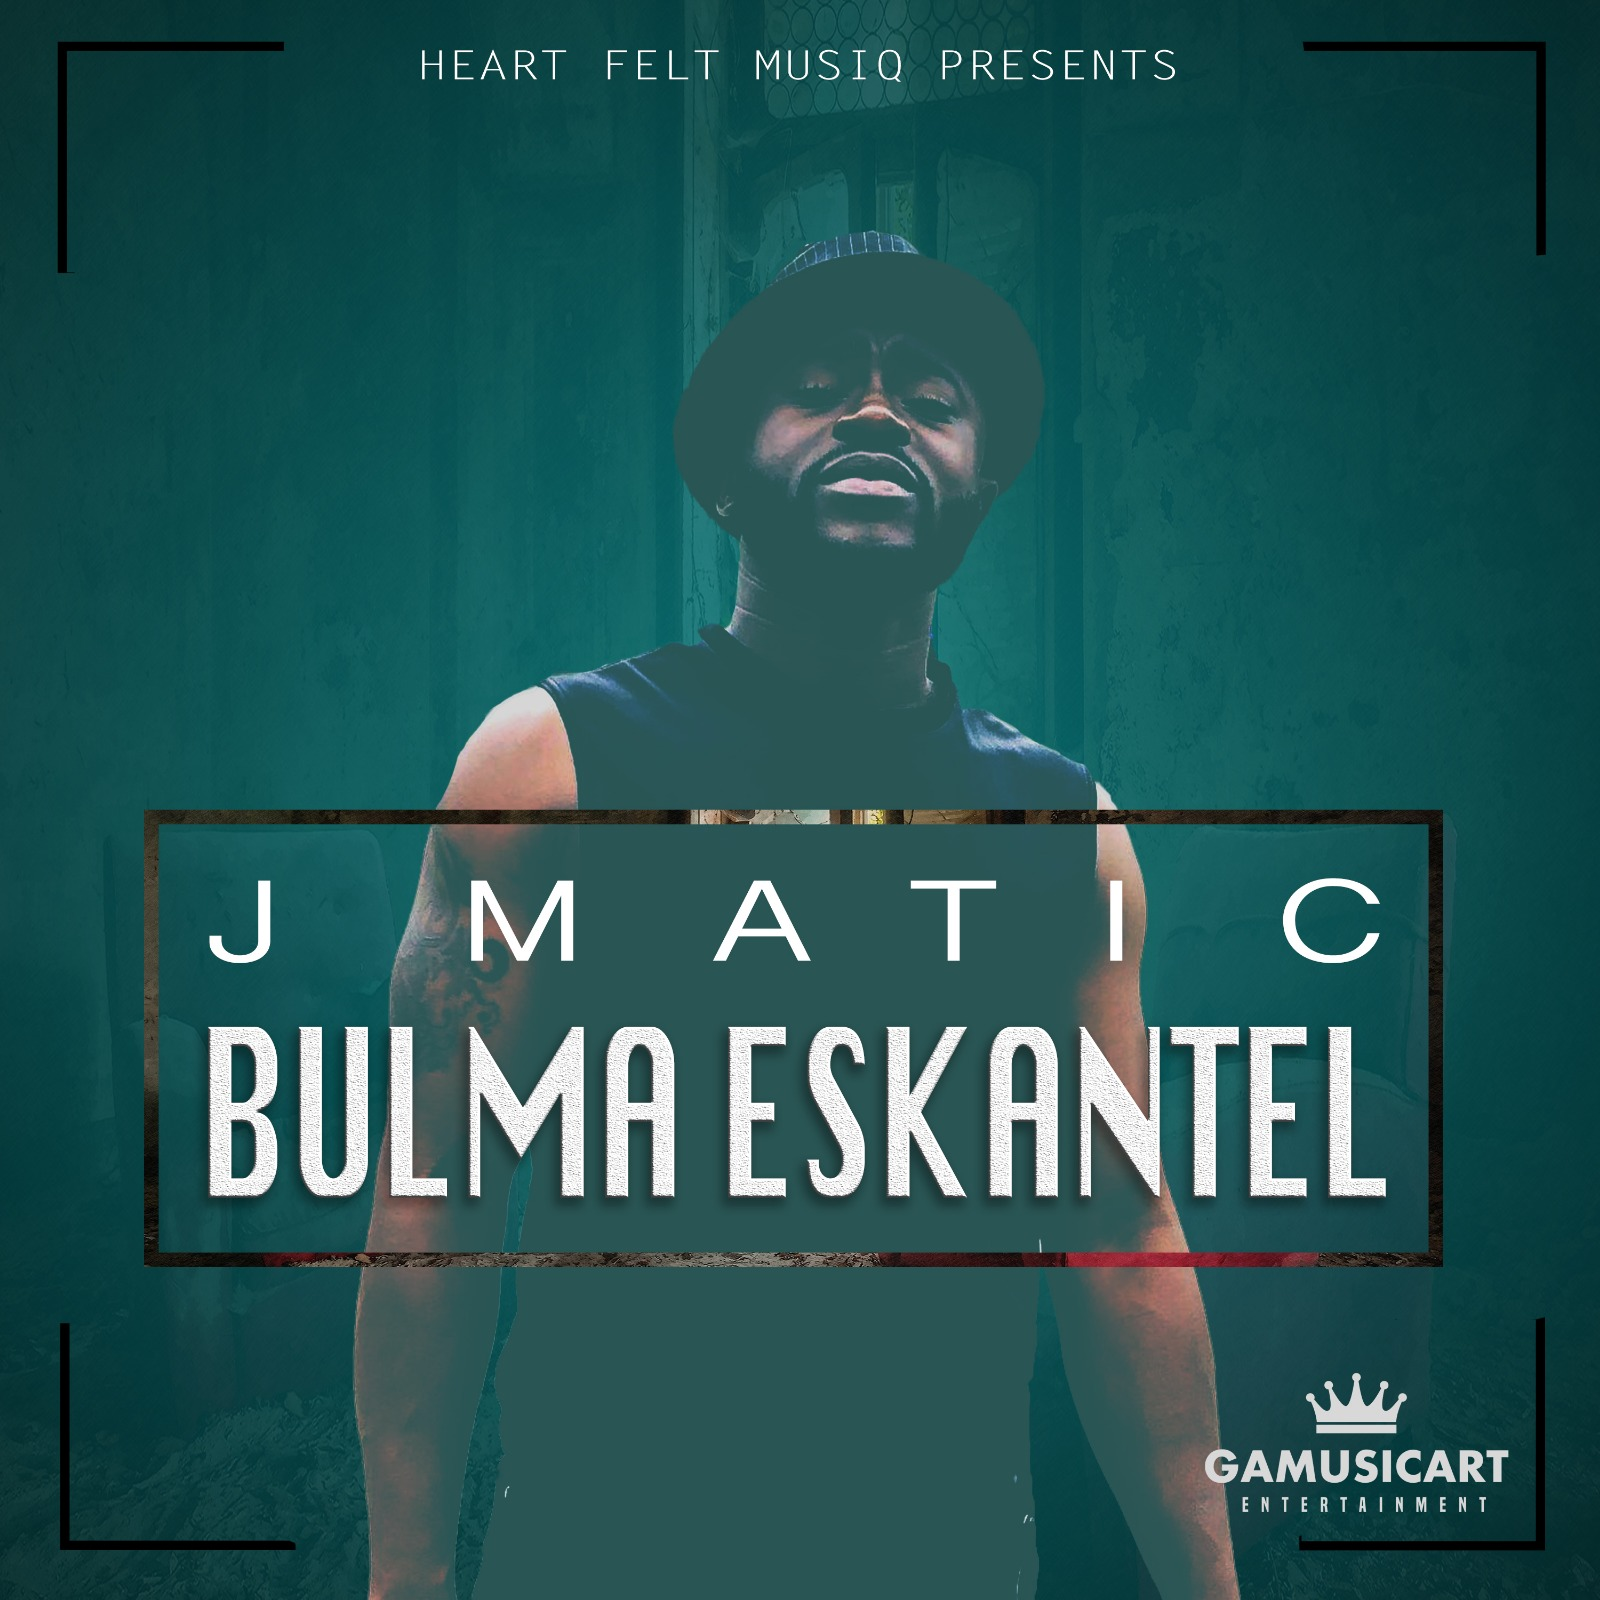 J MATIC-The Bimusical Artist